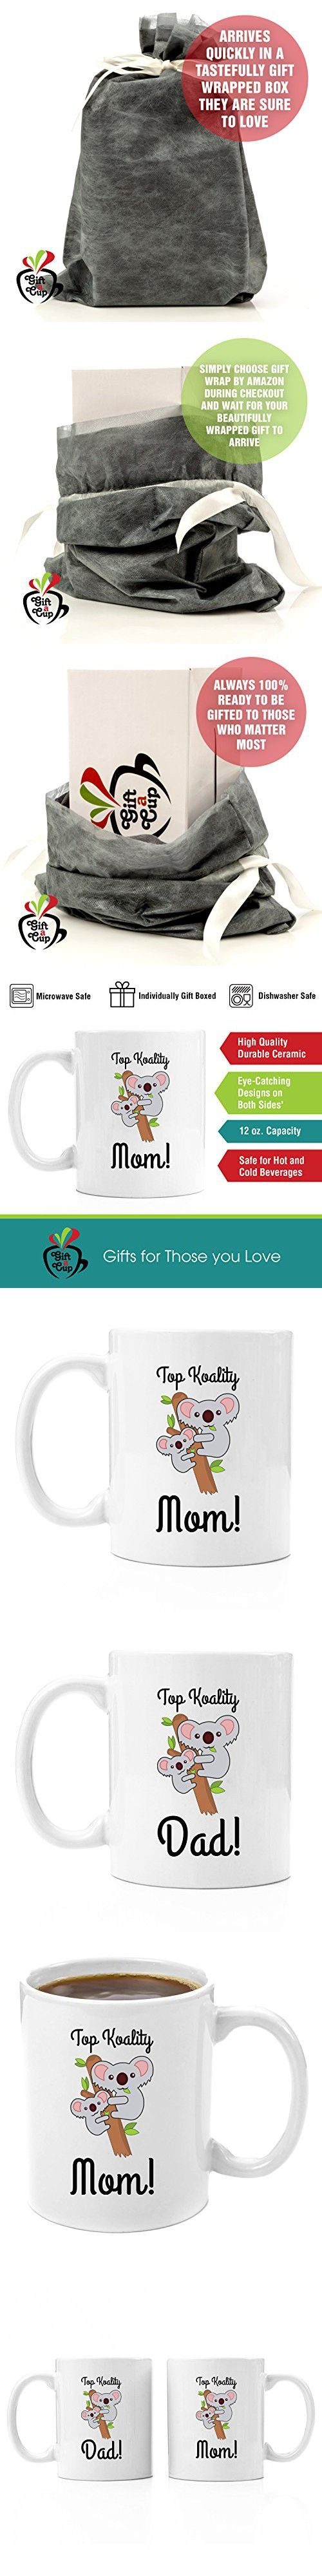 Top Koality Mom and Dad Ceramic Coffee Mug Gift Set | Premium Coffee Mug Gift Set - Perfect Birthday Gifts for Mom and Dad, Anniversary Gifts for Parents, New Parents Gifts, Dad to be Gifts